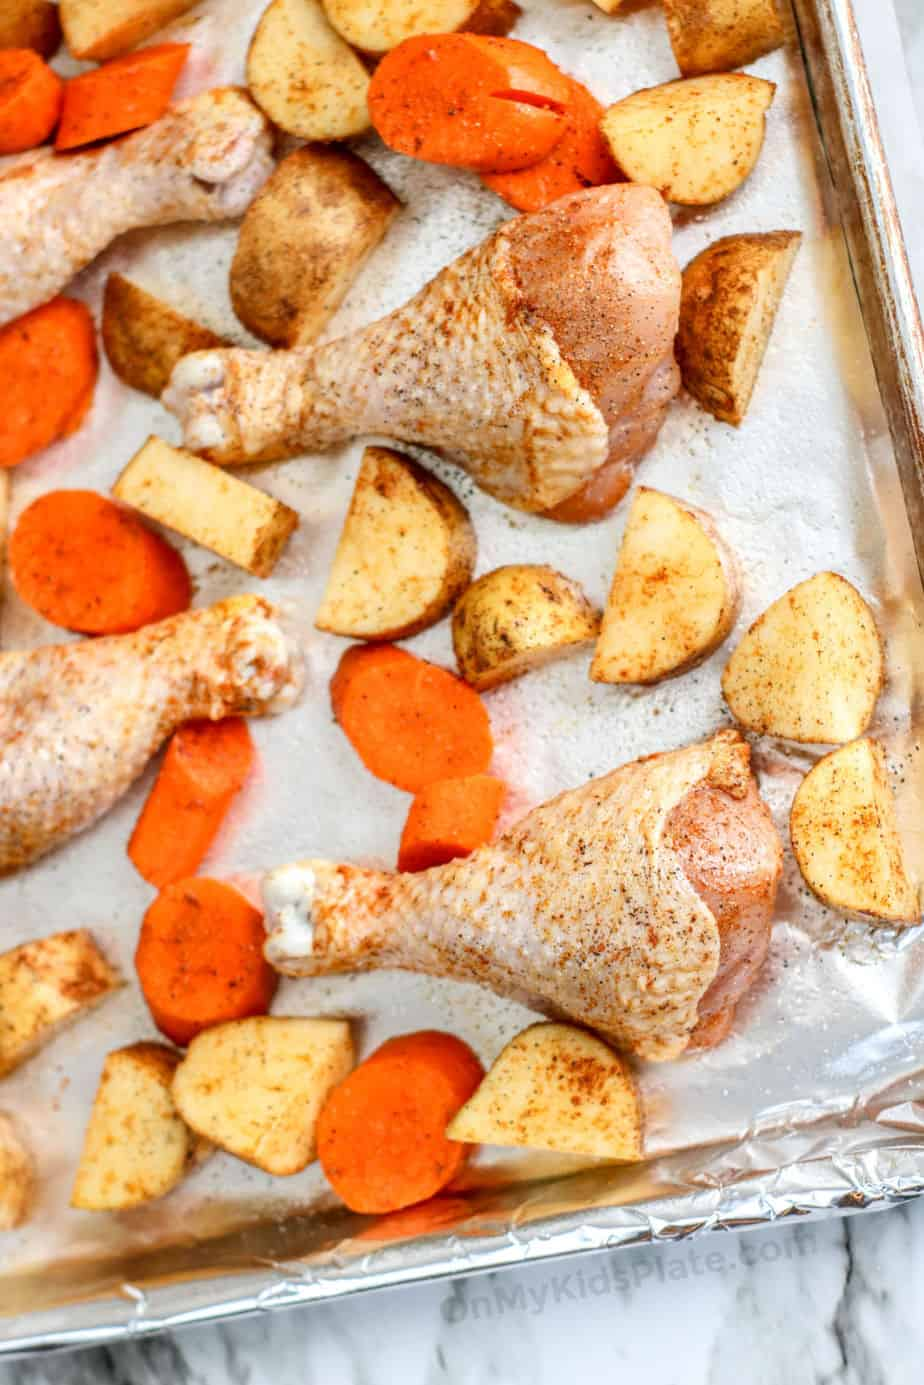 Chicken drumsticks and vegetables seasoned and spread on a rimmed baking sheet.